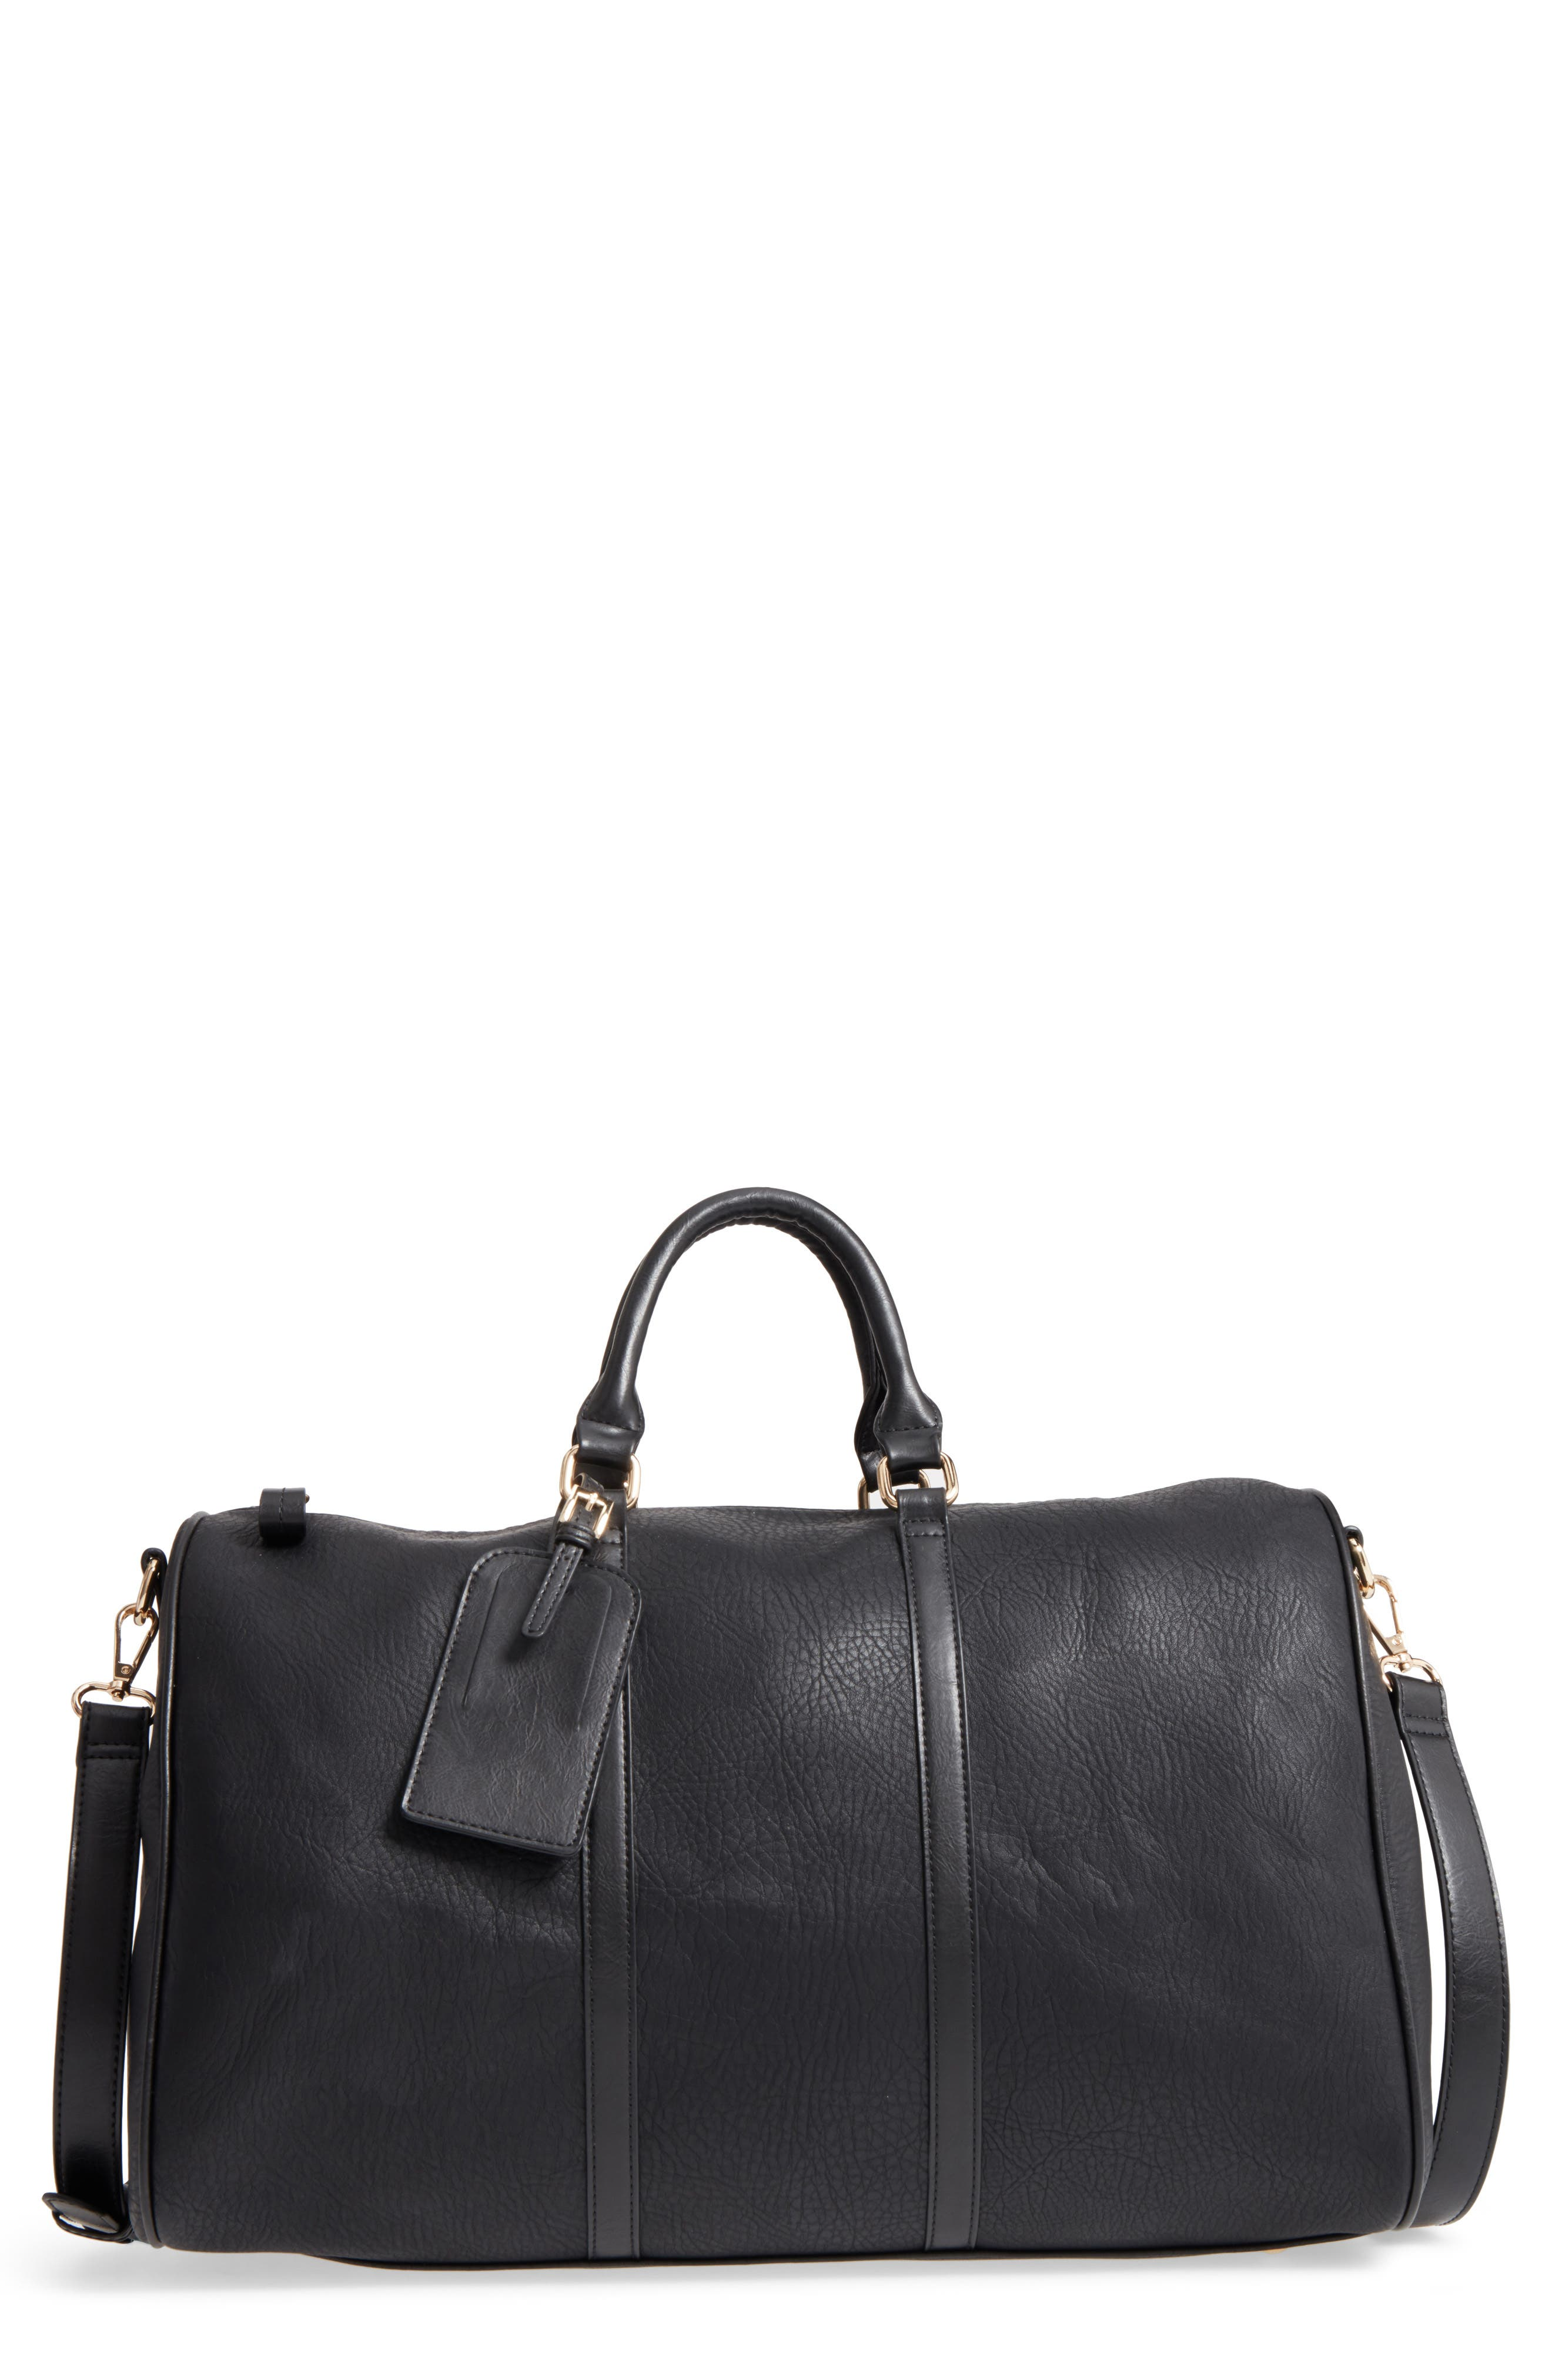 'Cassidy' Faux Leather Duffel Bag,                             Main thumbnail 1, color,                             002